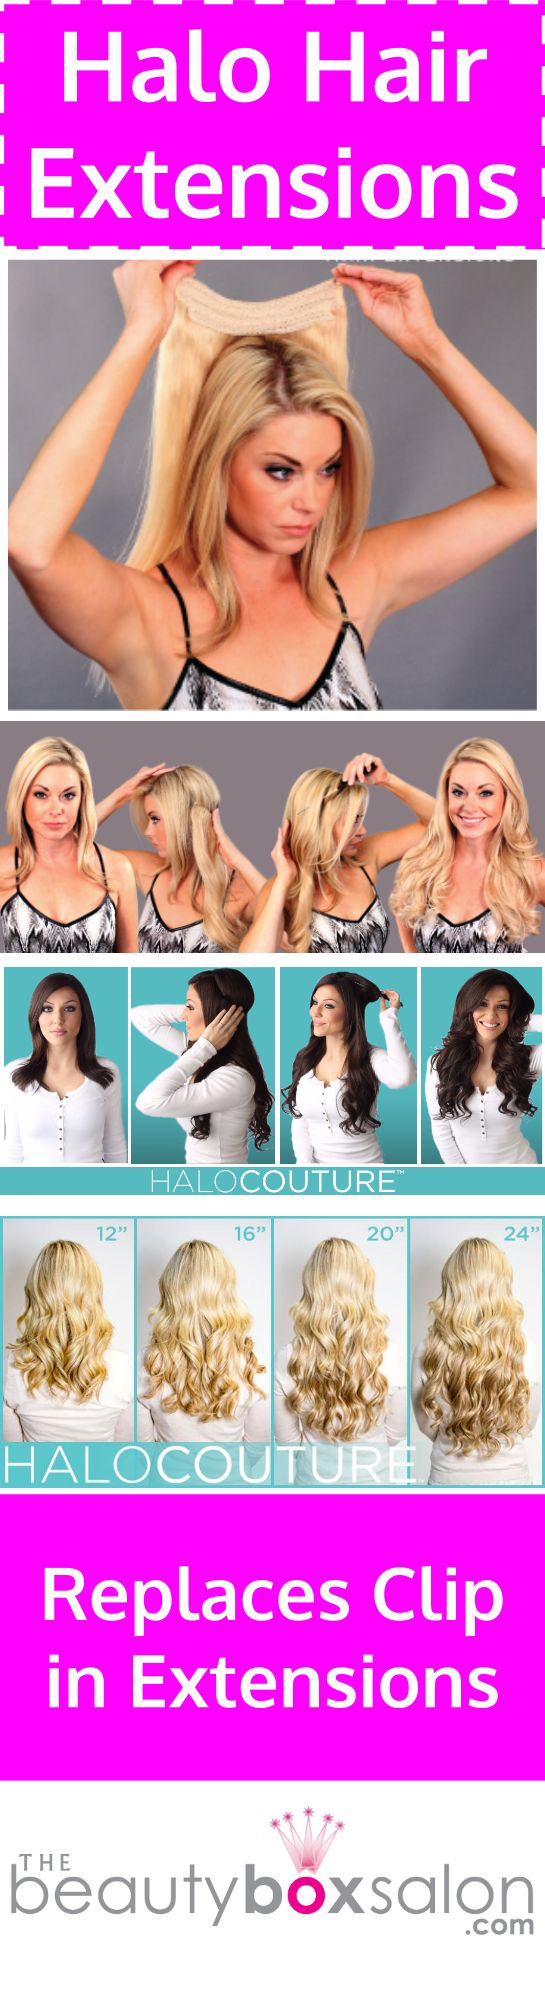 Halo hair extensions are way better than clip in hair extensions halo hair extensions are way better than clip in hair extensions find out why salons that sell halo hair extensions dallas hairhairextensions pmusecretfo Image collections